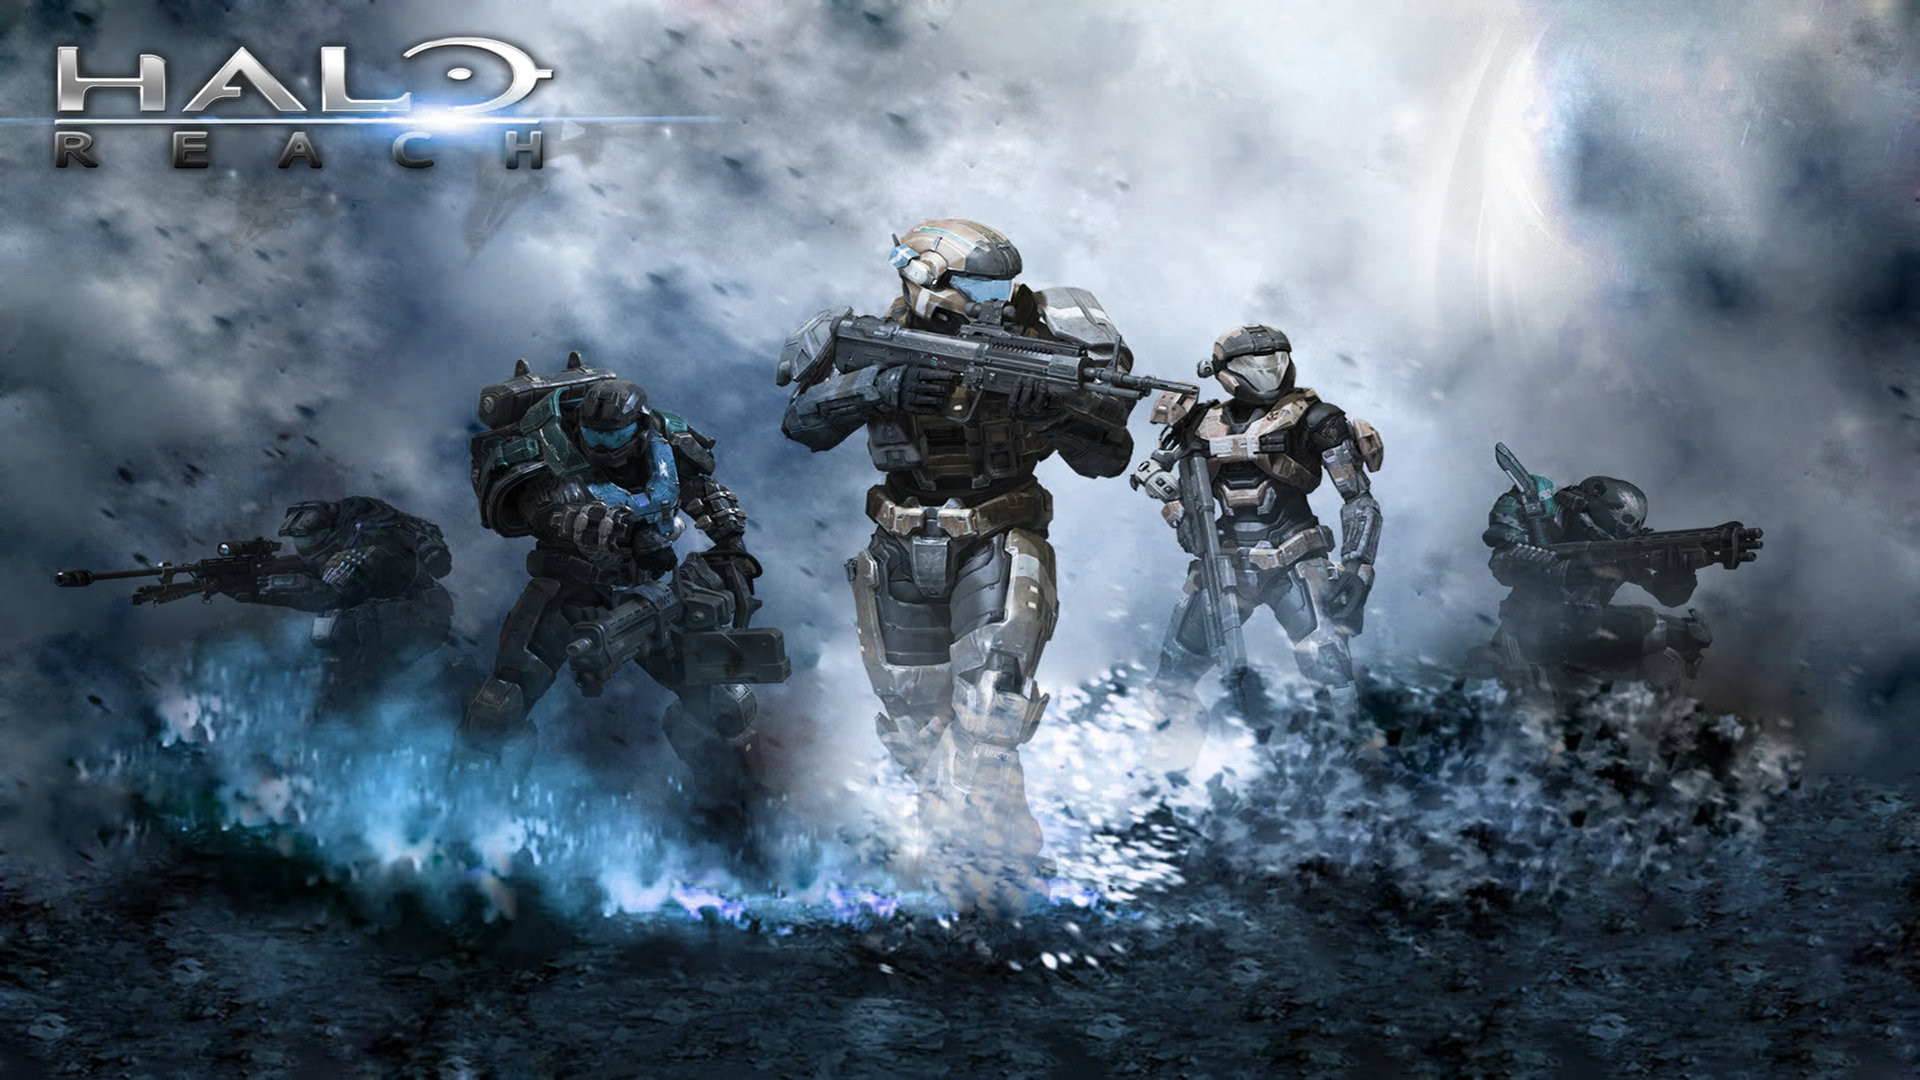 halo odst wallpaper (78+ images)